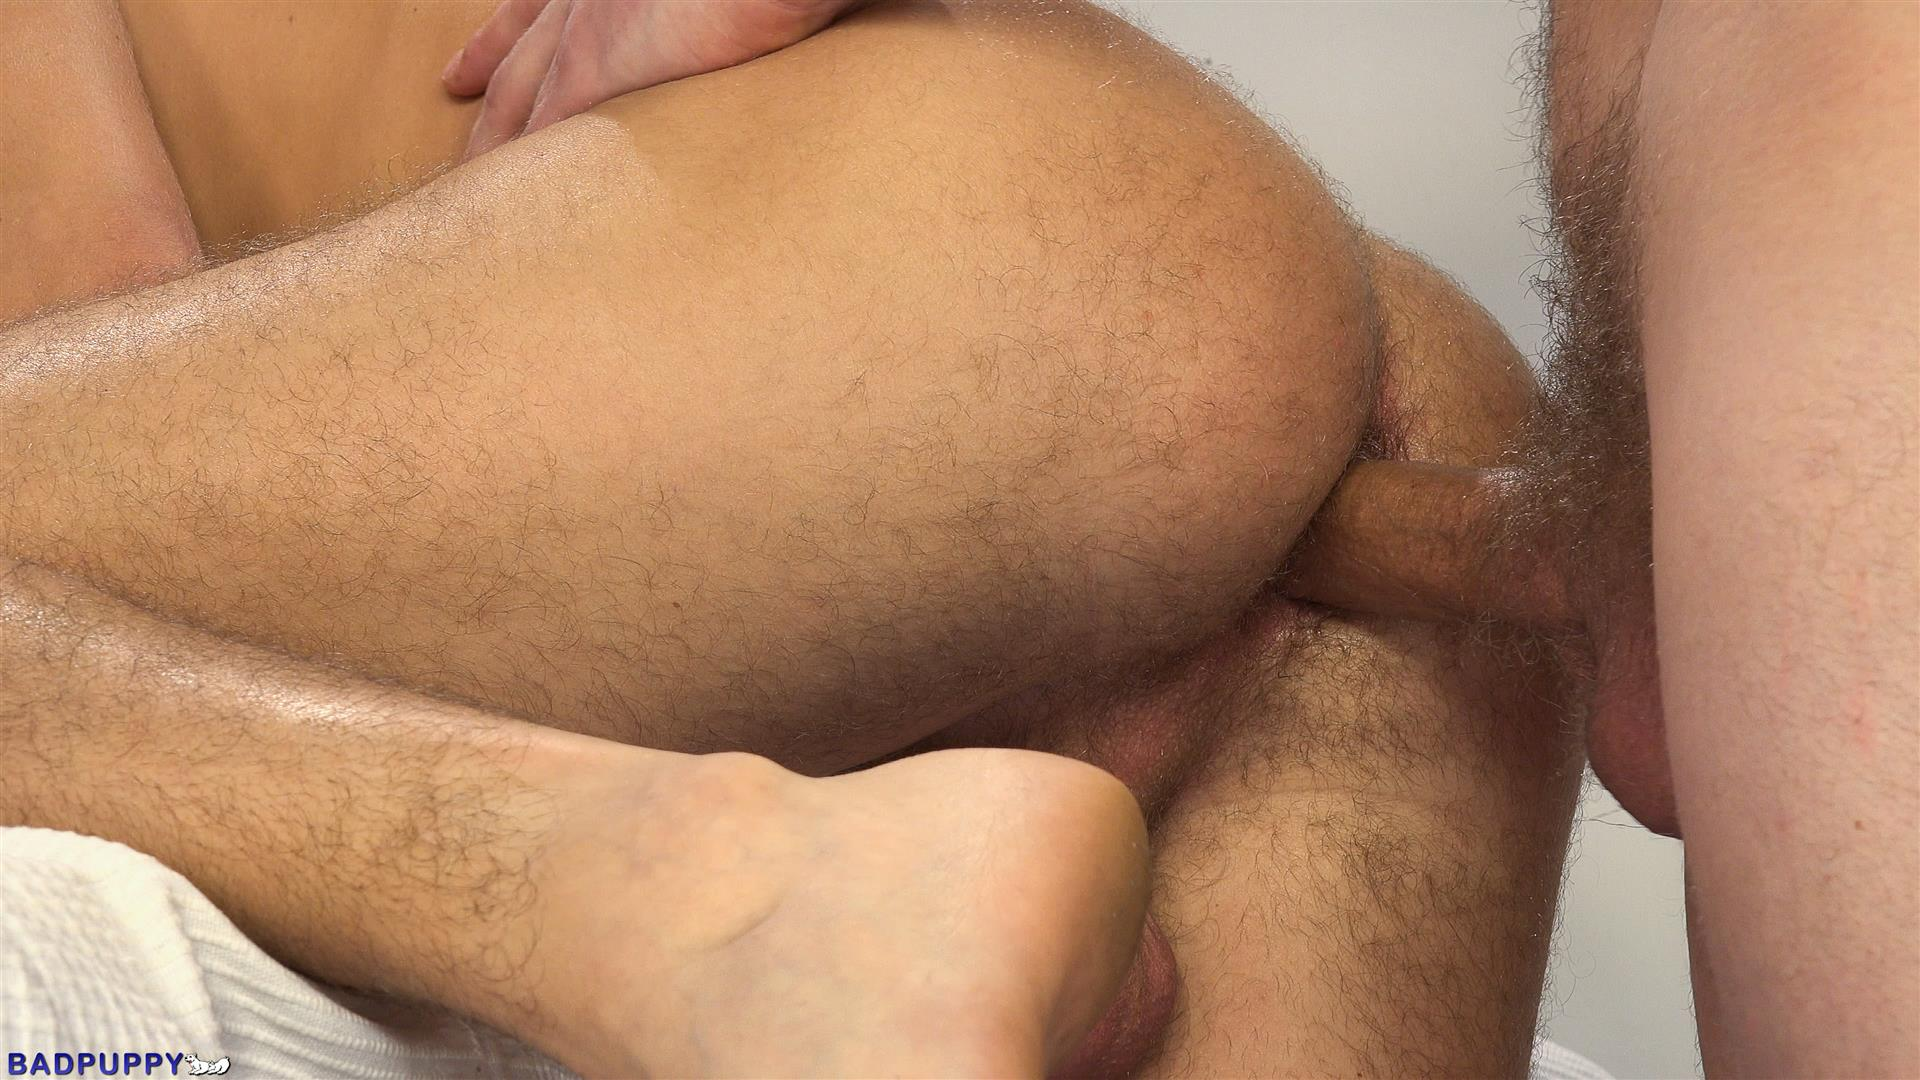 Badpuppy Nikol Monak and Rosta Benecky Czech Guys Fucking Bareback Amateur Gay Porn 25 Czech Hunks With Big Uncut Cocks Fucking At The Doctors Office